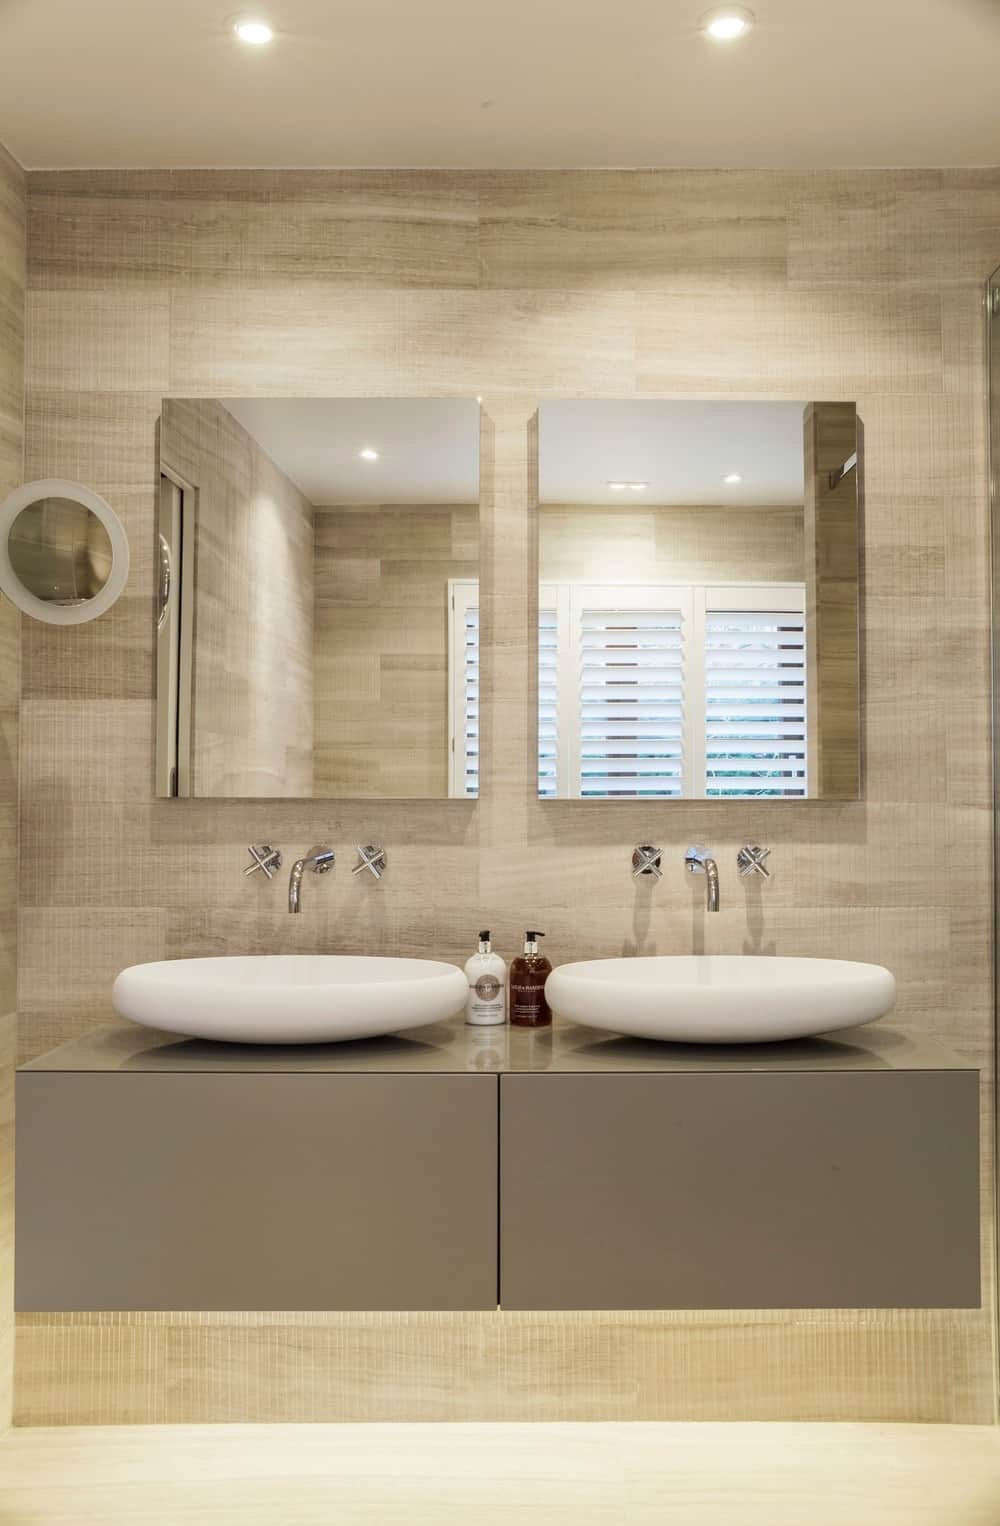 A close up look at this contemporary primary bathroom's double floating vanity vessel sink.